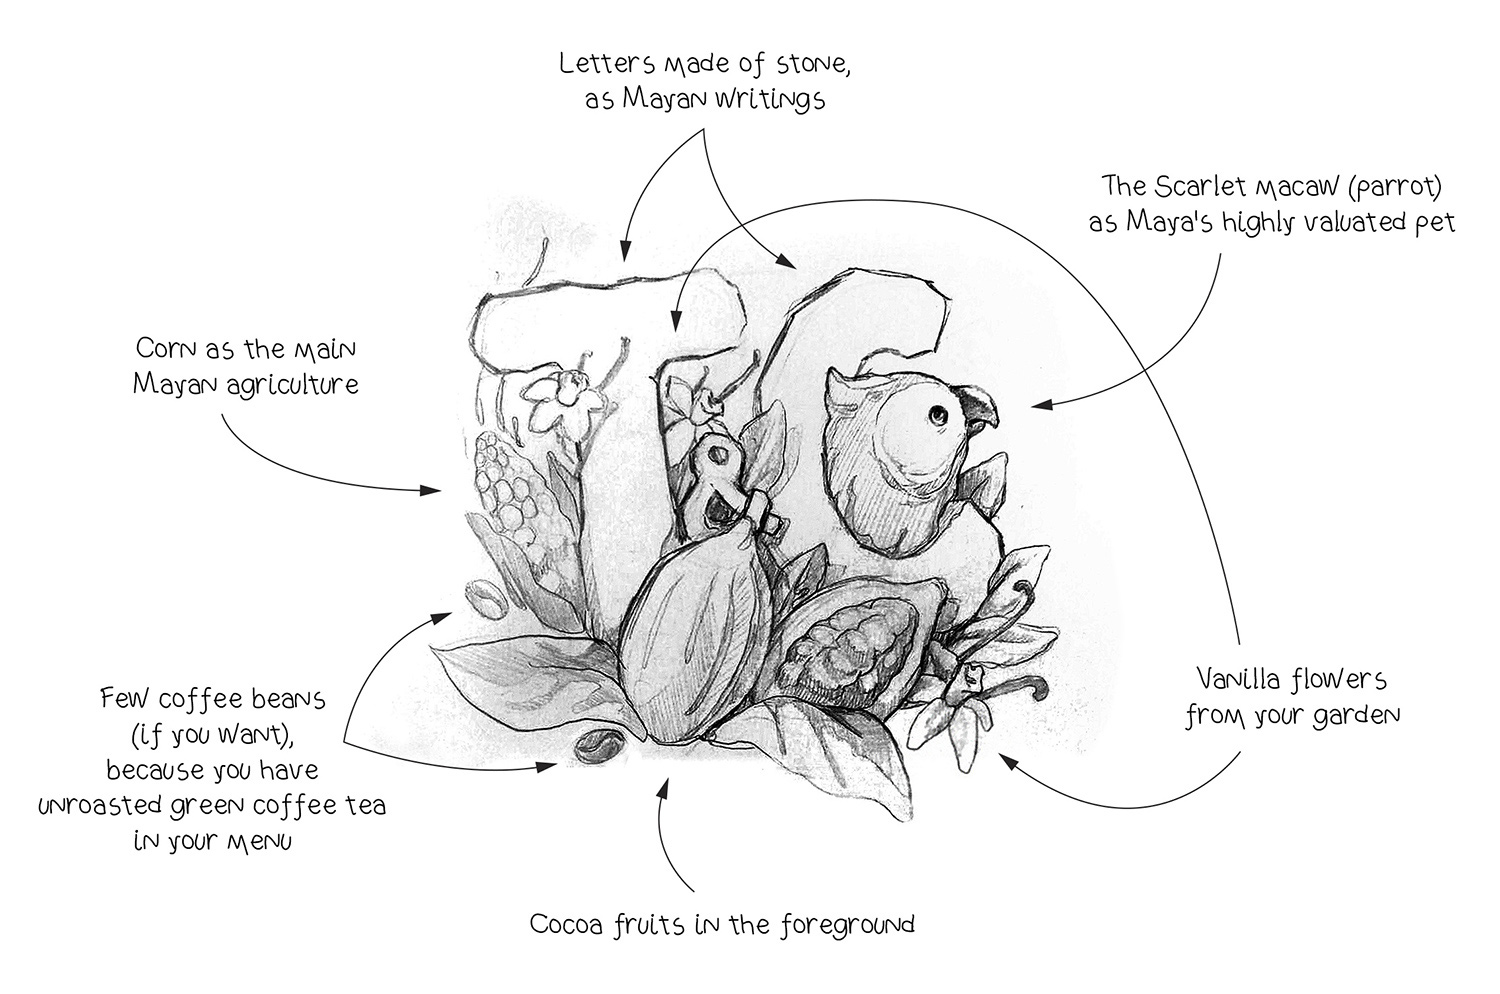 The T&C logo idea. Cocoa pods and vanilla flowers, a parrot drawing.